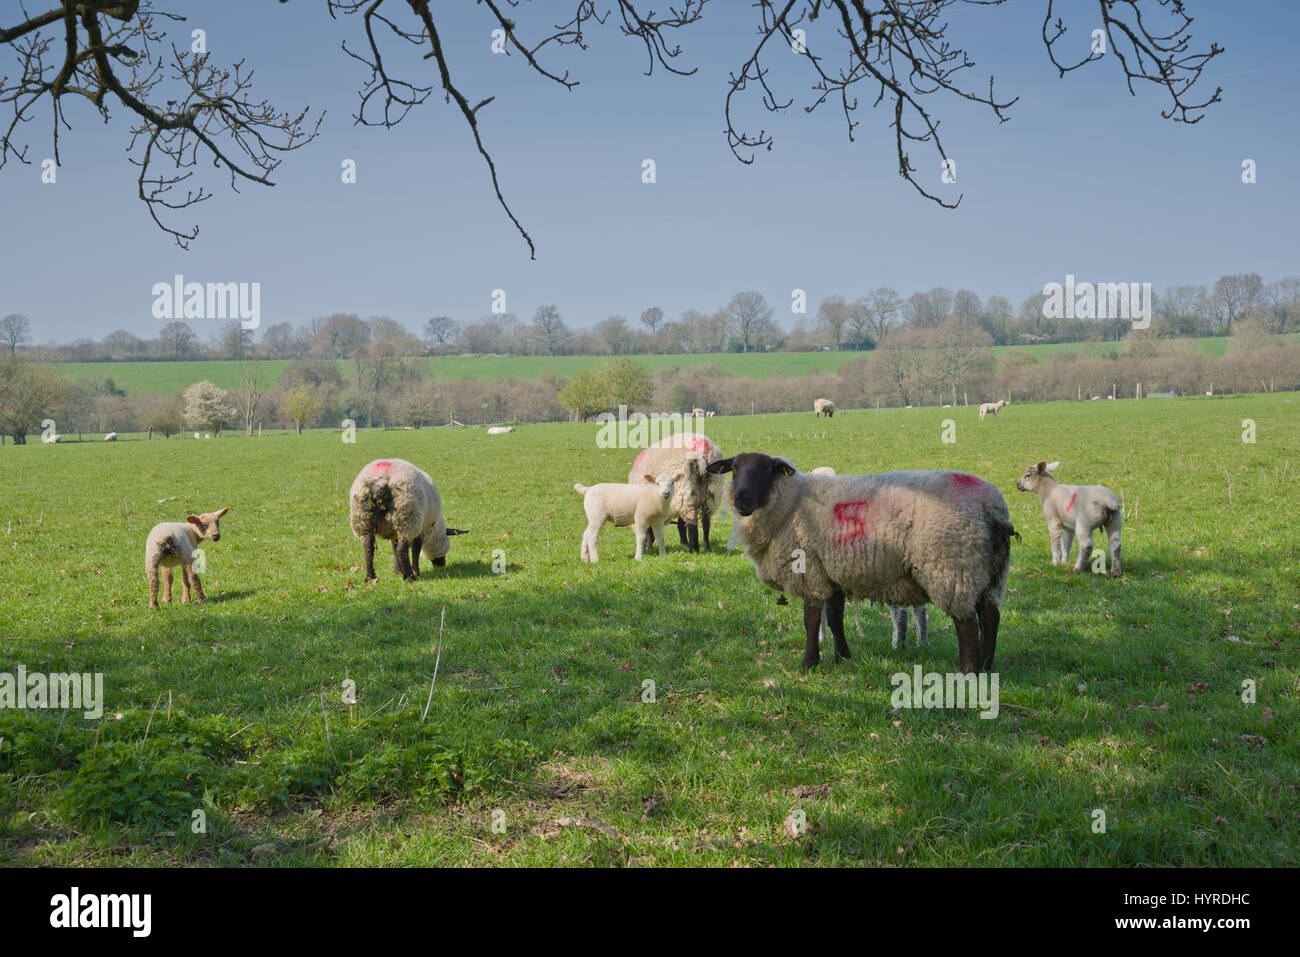 Sheep in a British field in March. - Stock Image